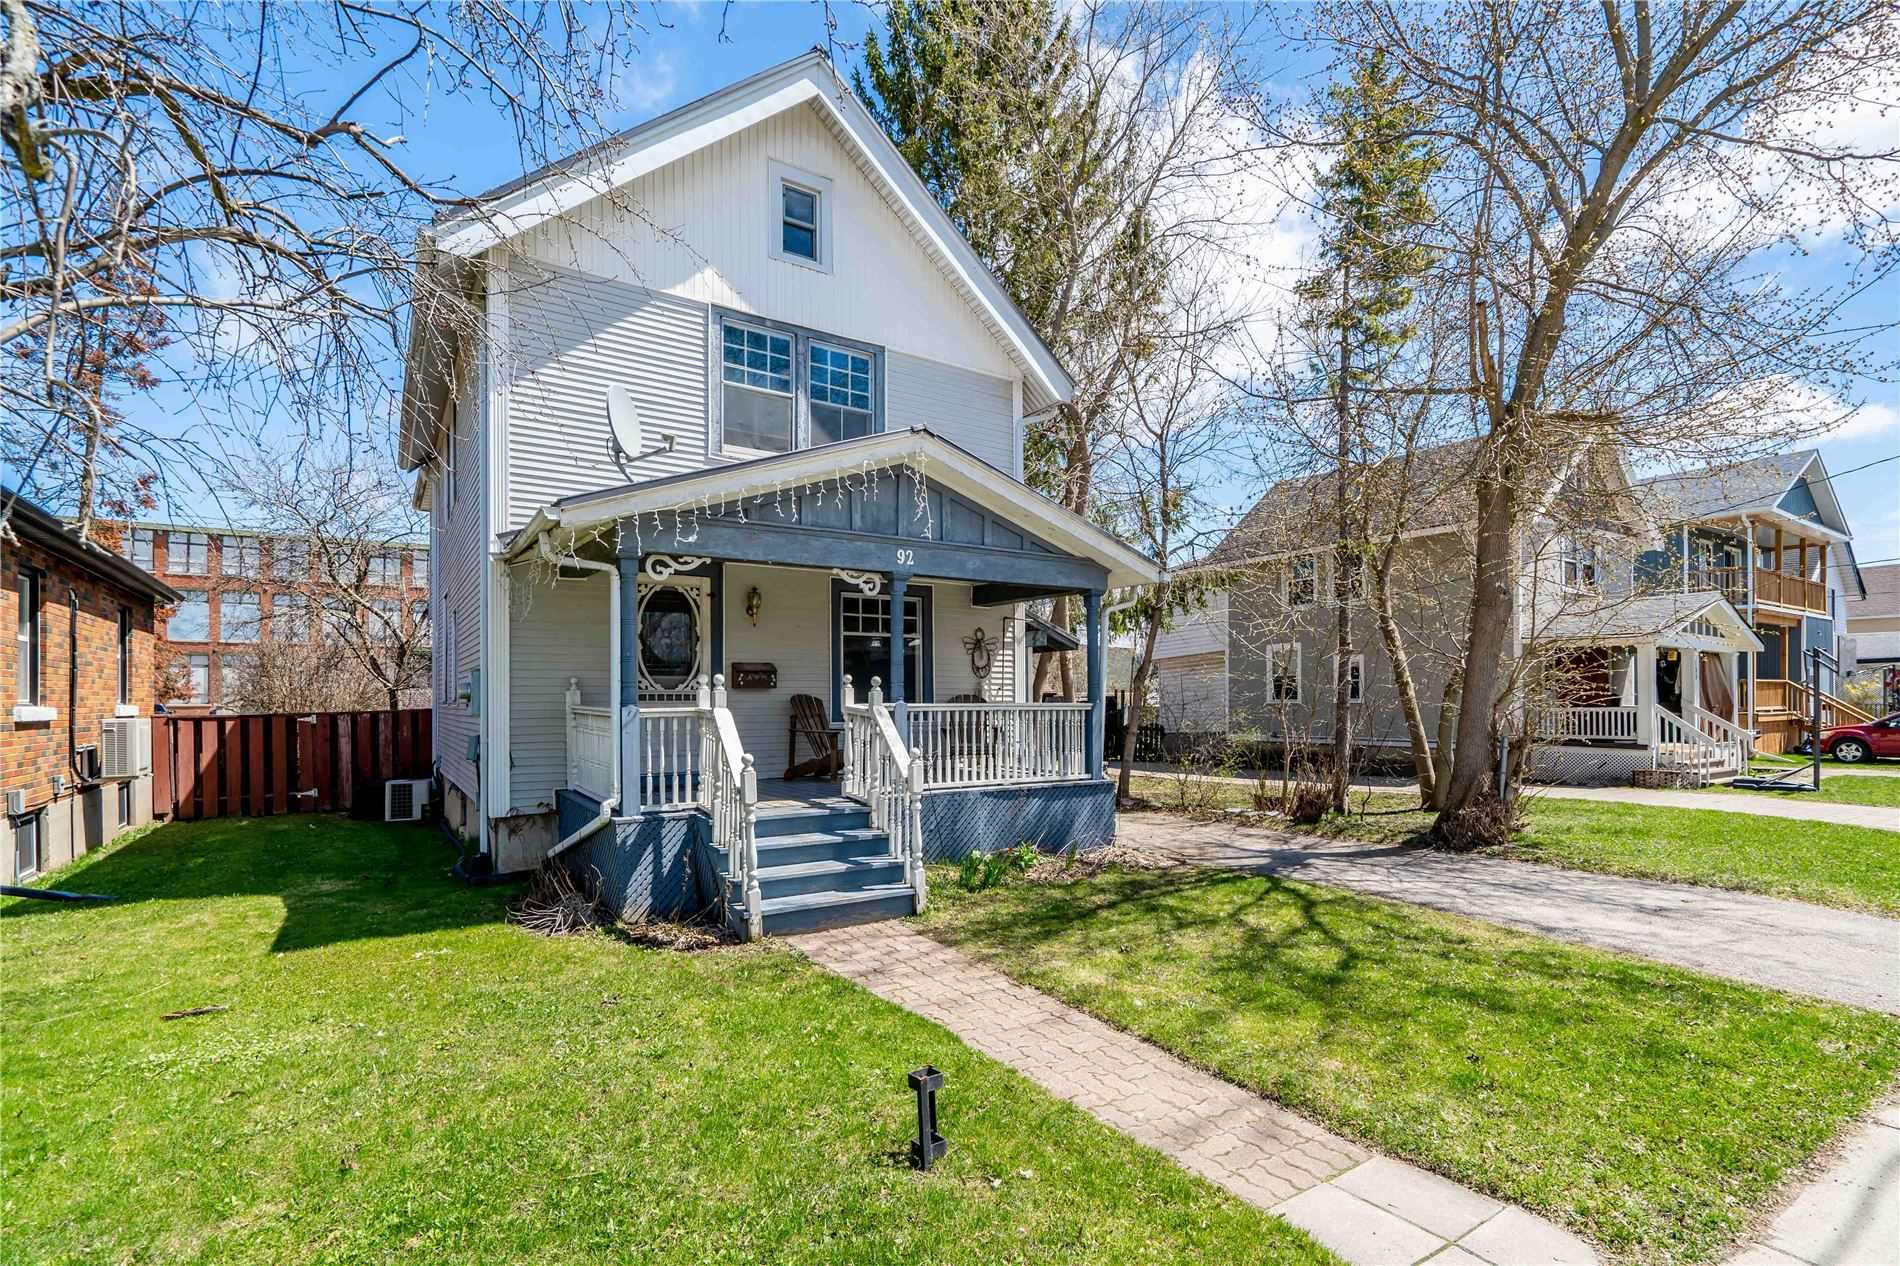 pictures of house for sale MLS: S4753650 located at 92 Dunlop St, Orillia L3V5P4